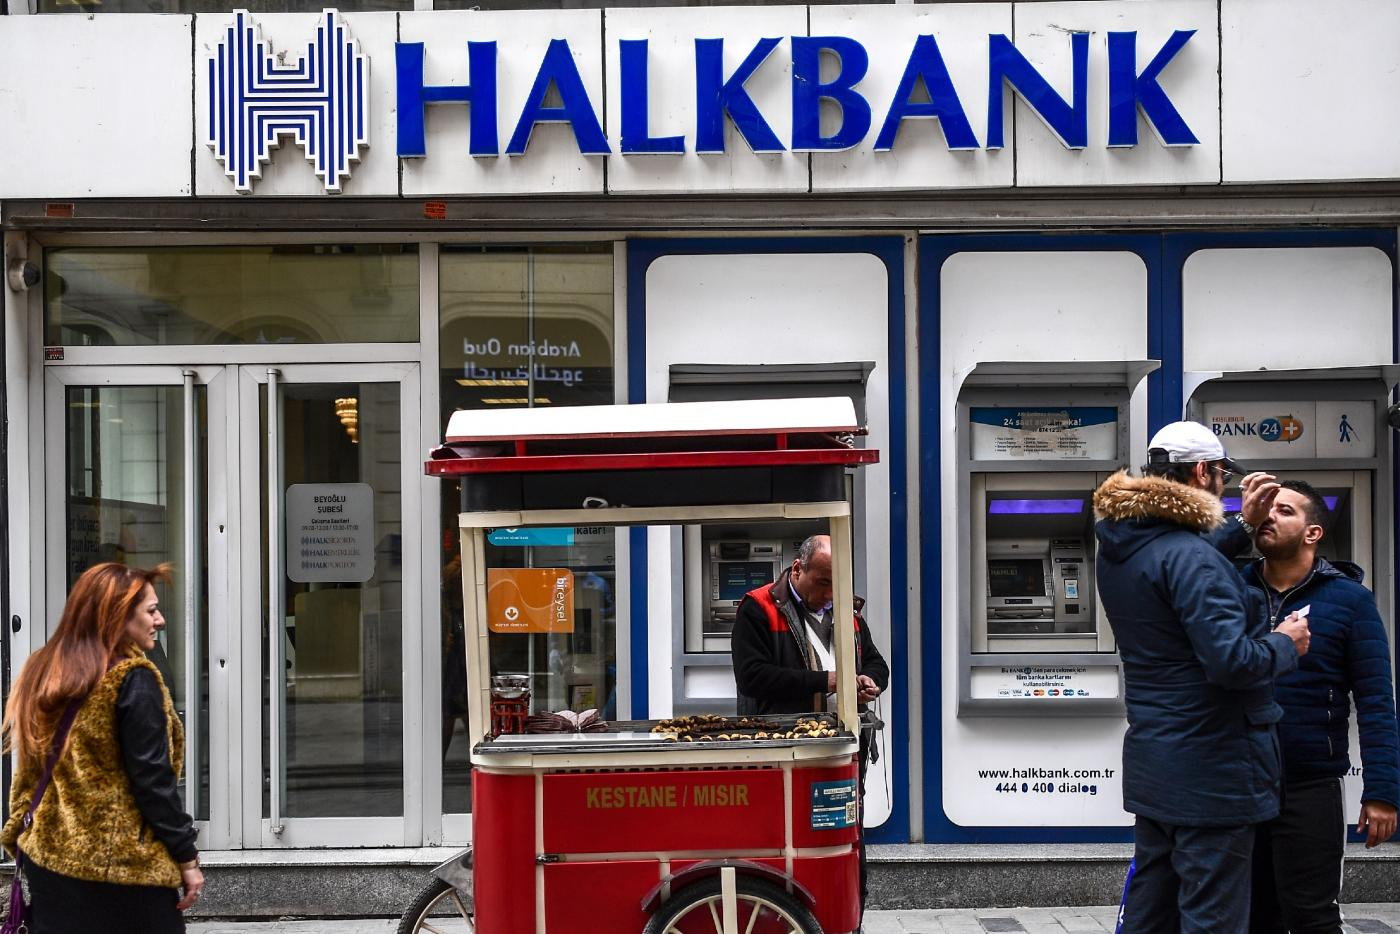 U.S. prosecutors accuse Turkey's Halkbank of scheme to evade Iran sanctions